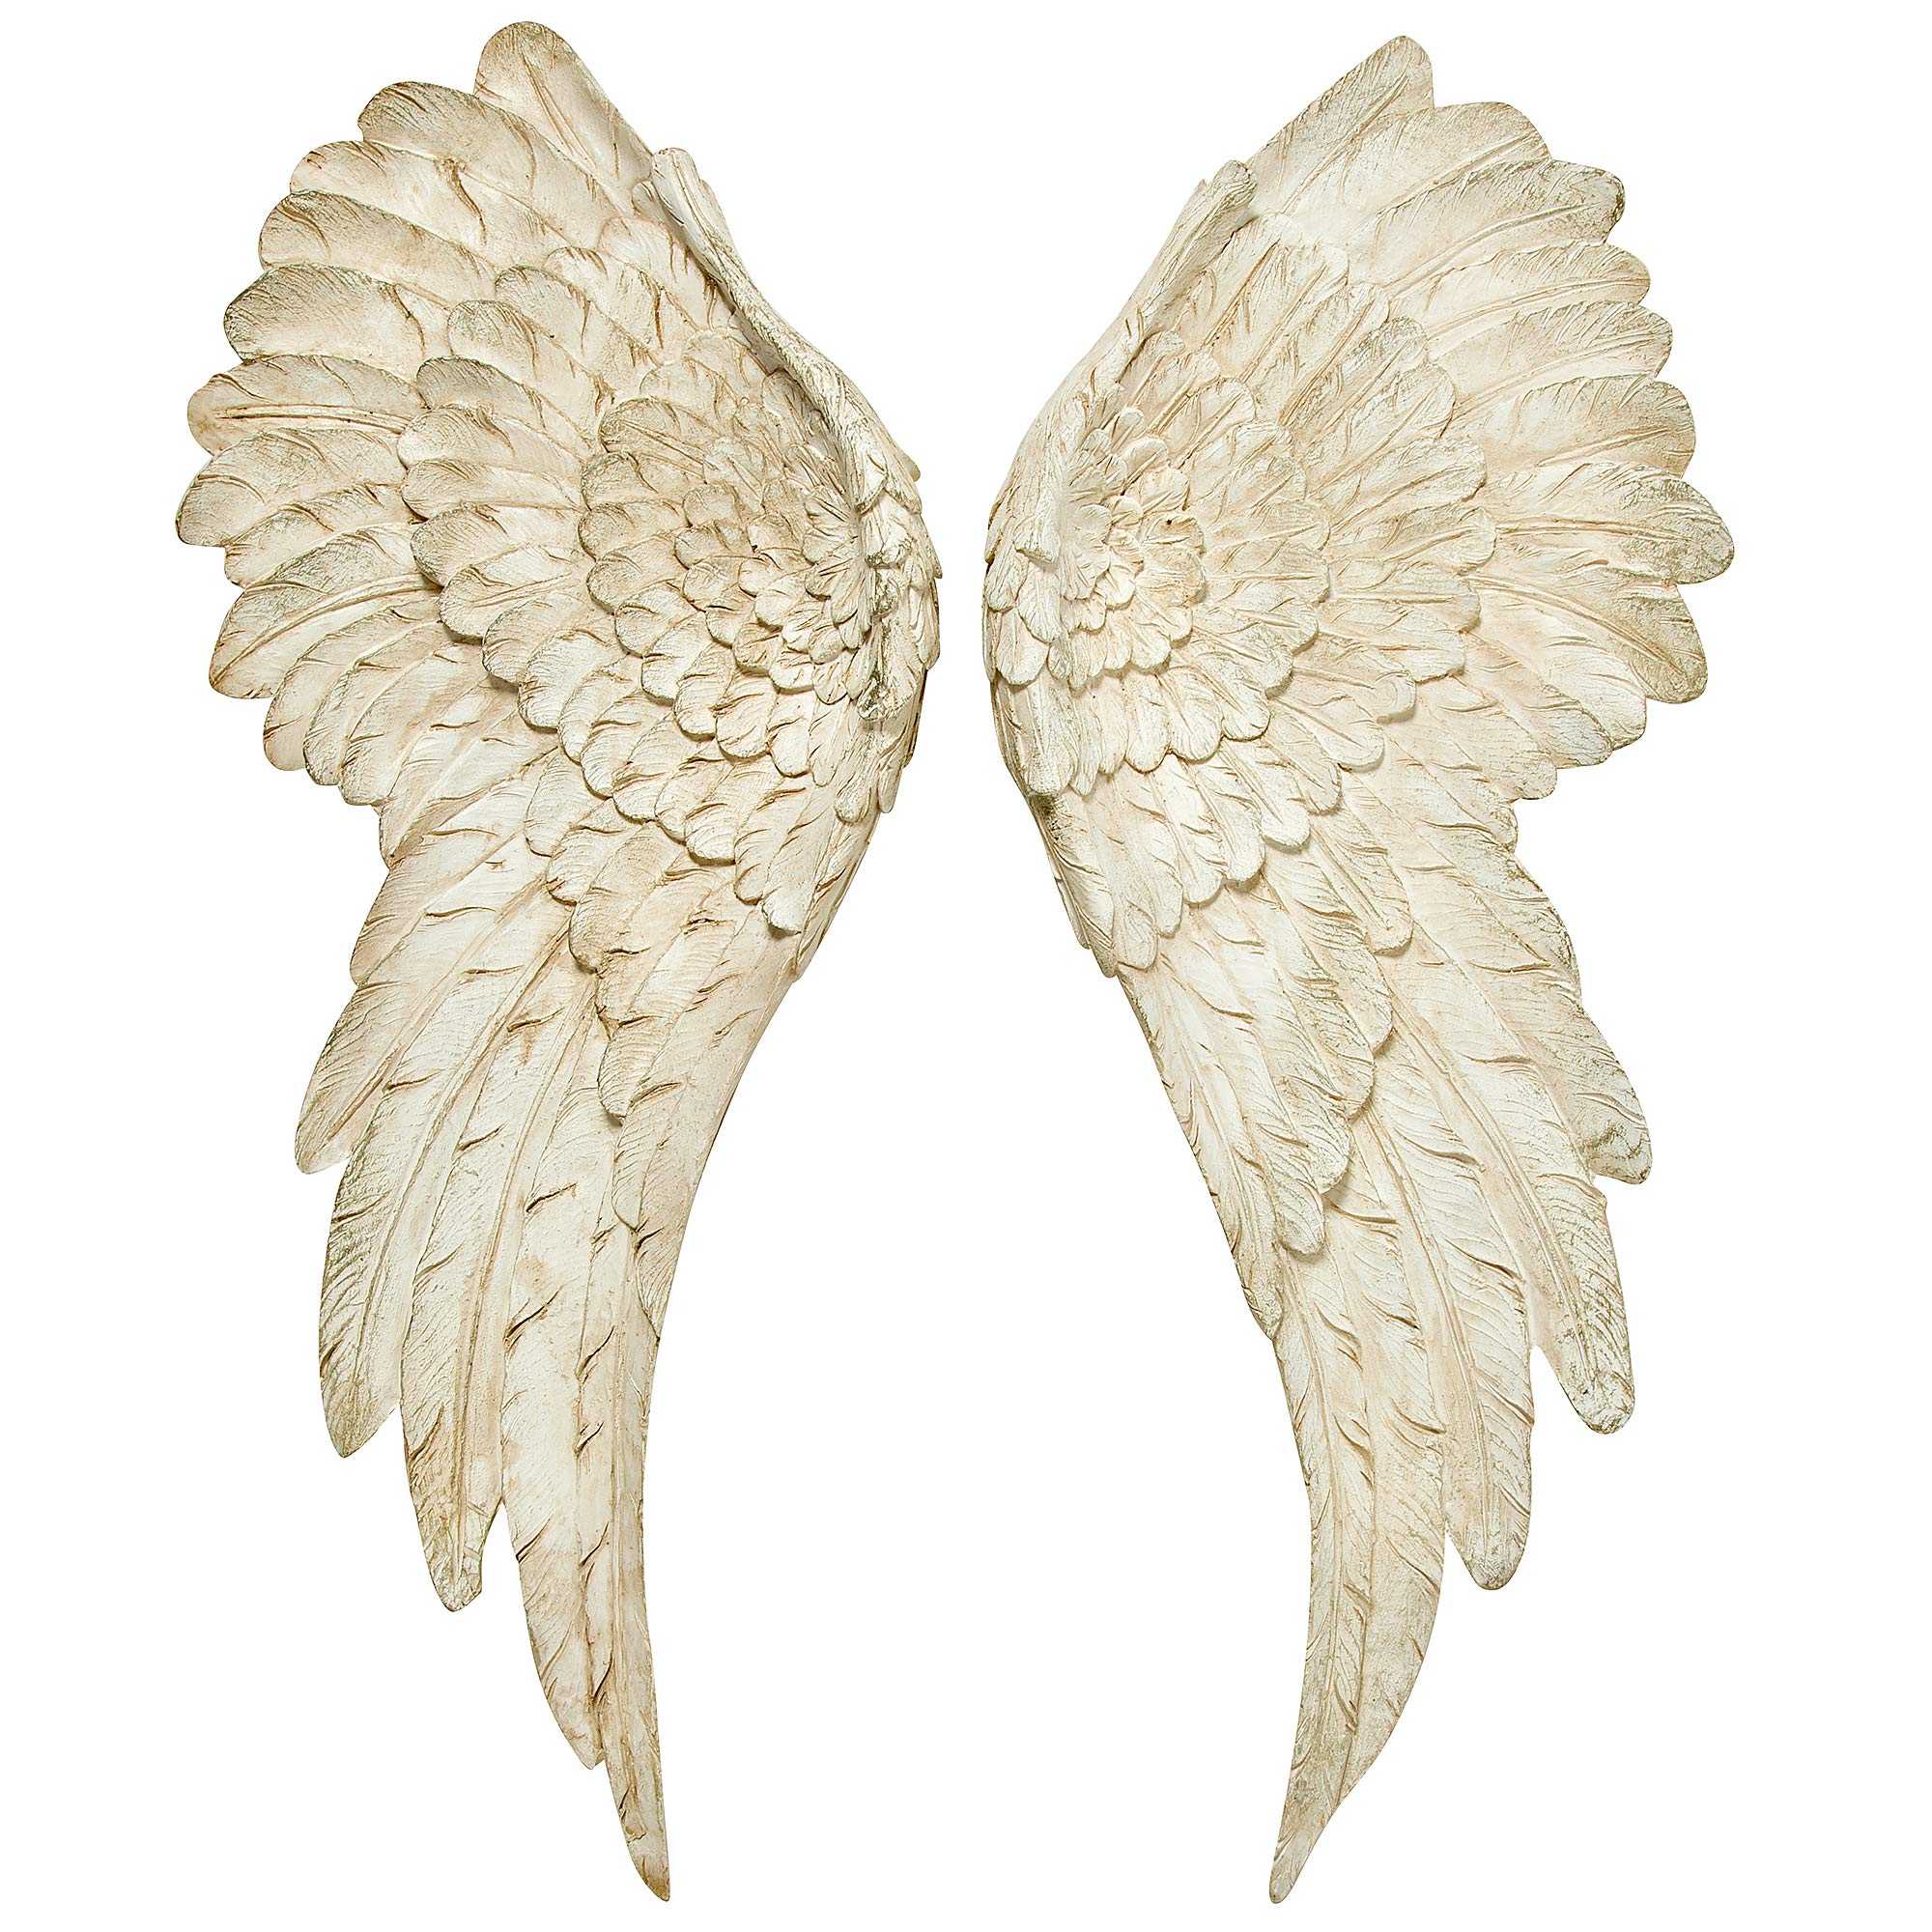 WHW Whole House Worlds Grand Tour Angel Wings, Vintage Style, Set of 2, Antique White, Artisinal Design, Hand Crafted, Bas Relief Sculptures, 21 3/4 Inches Tall